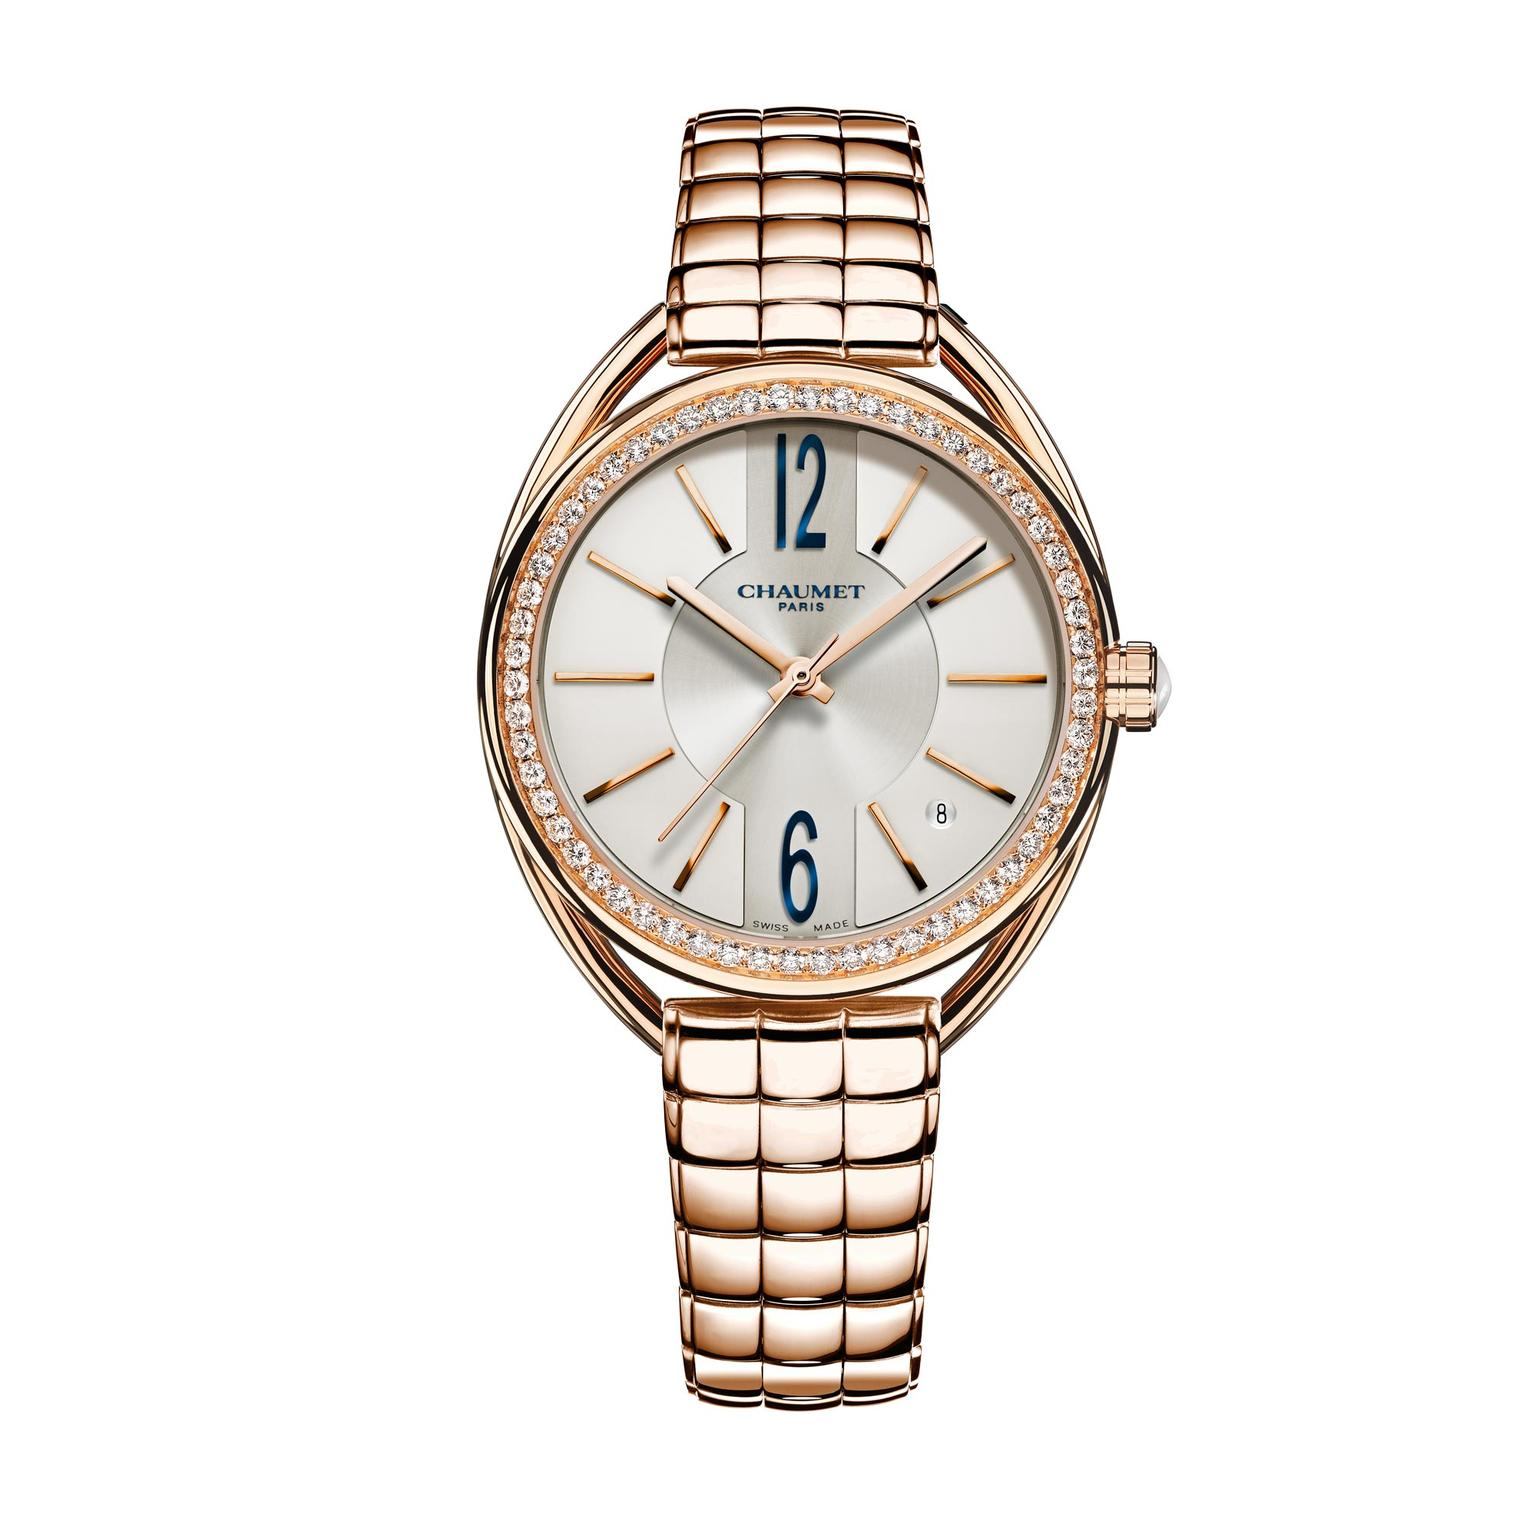 Liens de Chaumet pink gold watch with diamonds